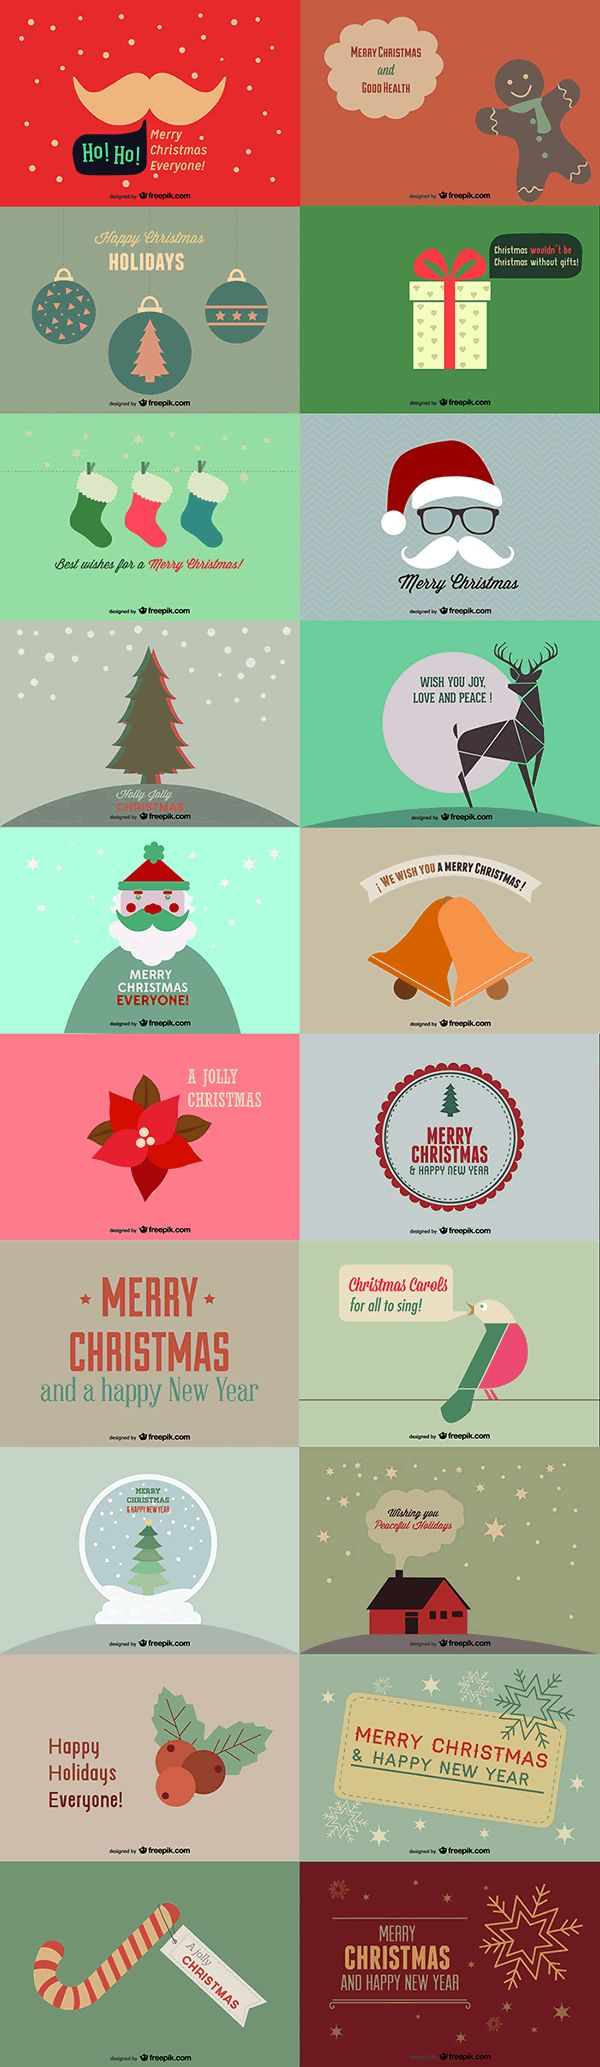 vetctor christmas cards #freebie #christmas